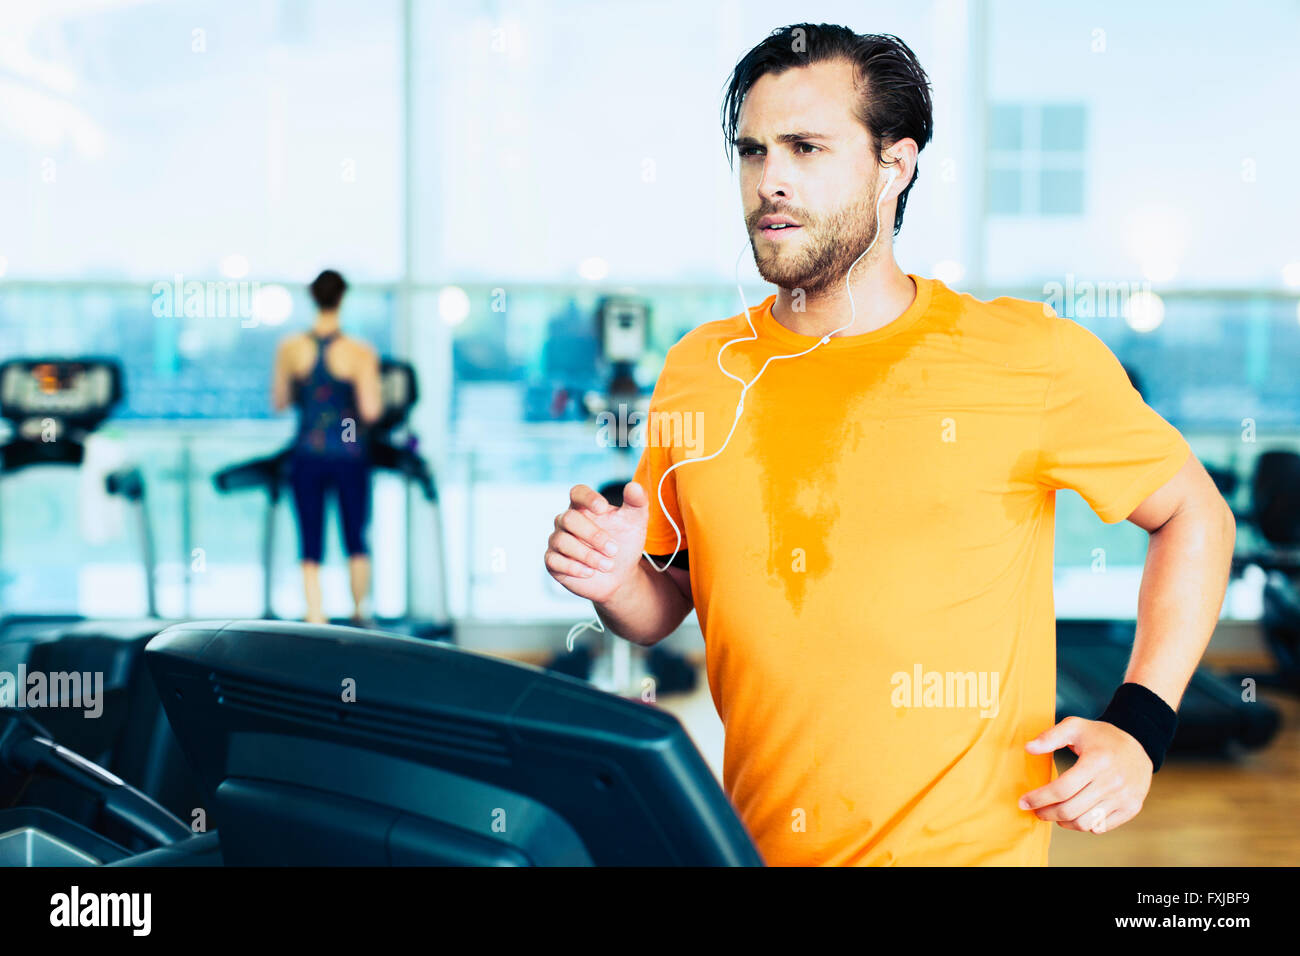 Sweating man with headphones running on treadmill at gym - Stock Image